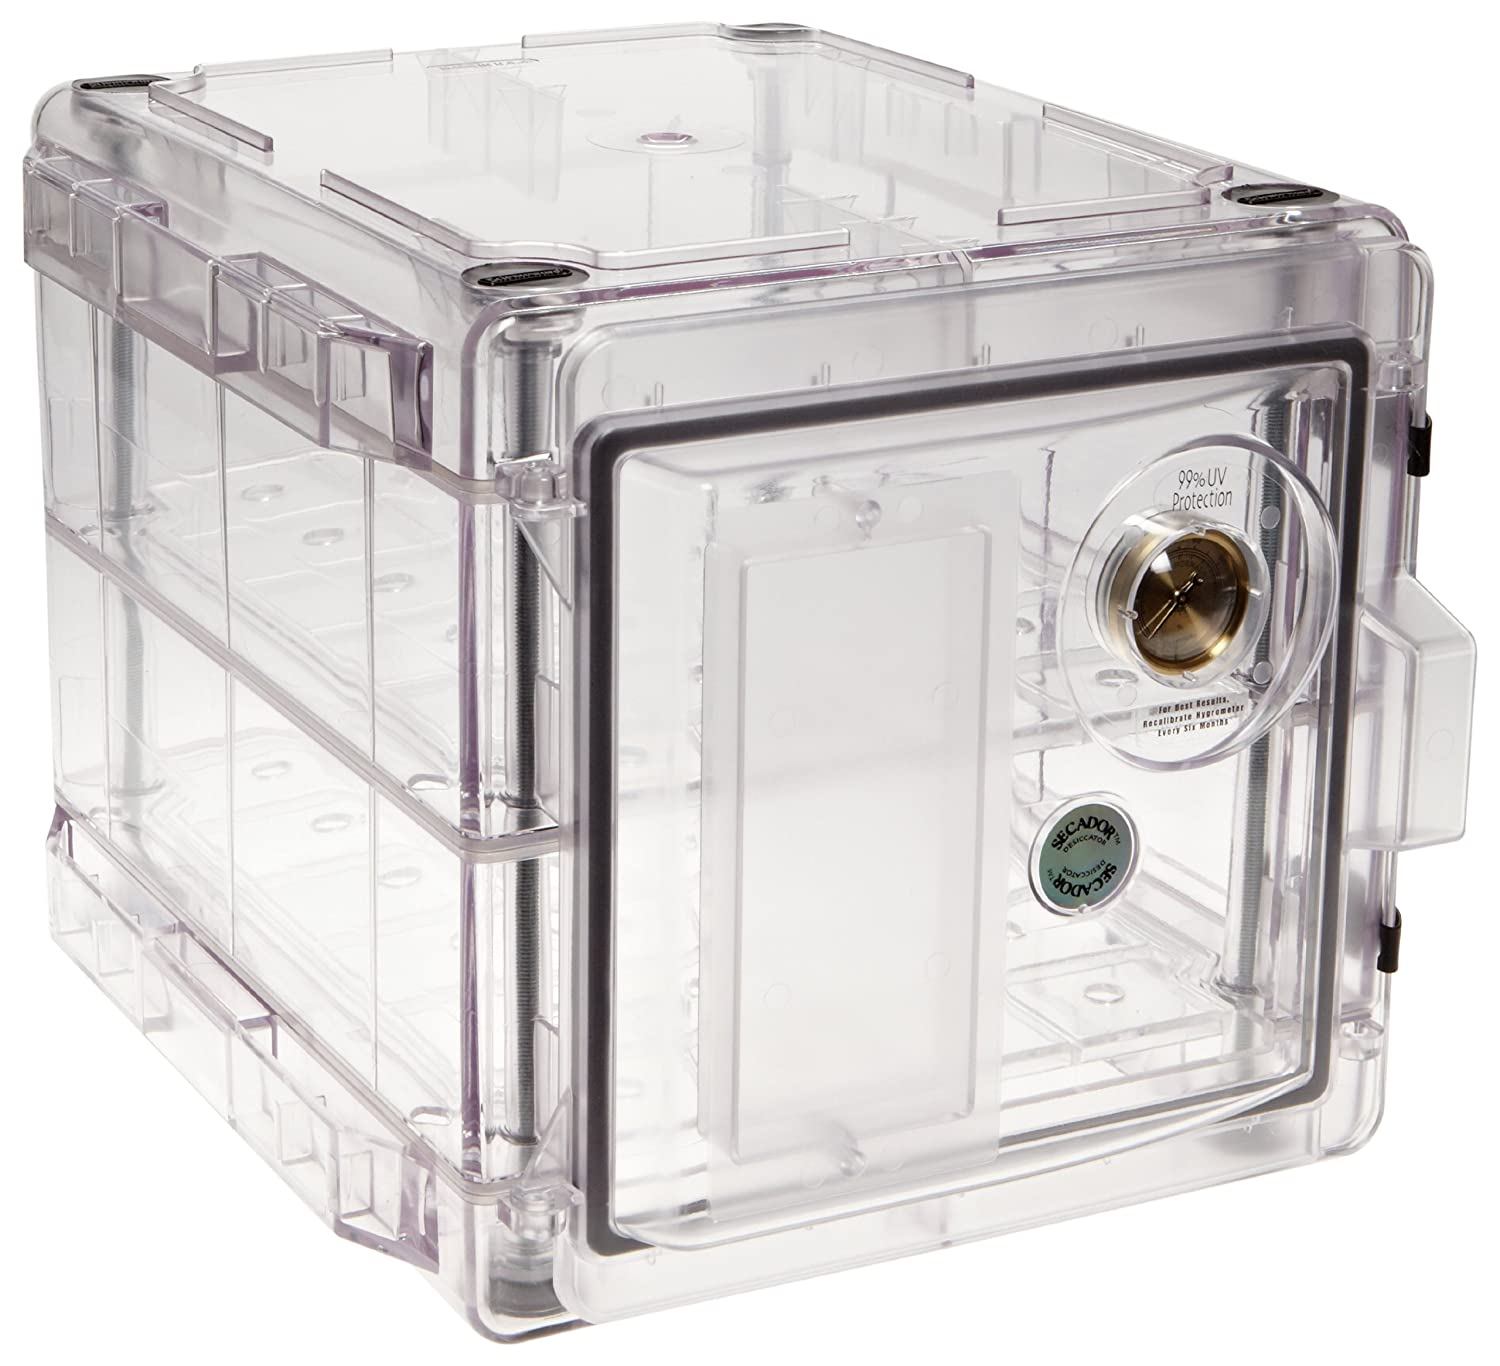 Bel-Art Secador Clear 4.0 Vertical Desiccator Cabinet with Blue End-Caps; 1.9 cu. ft. (F42074-1006): Science Lab Desiccator Accessories: Amazon.com: Office ...